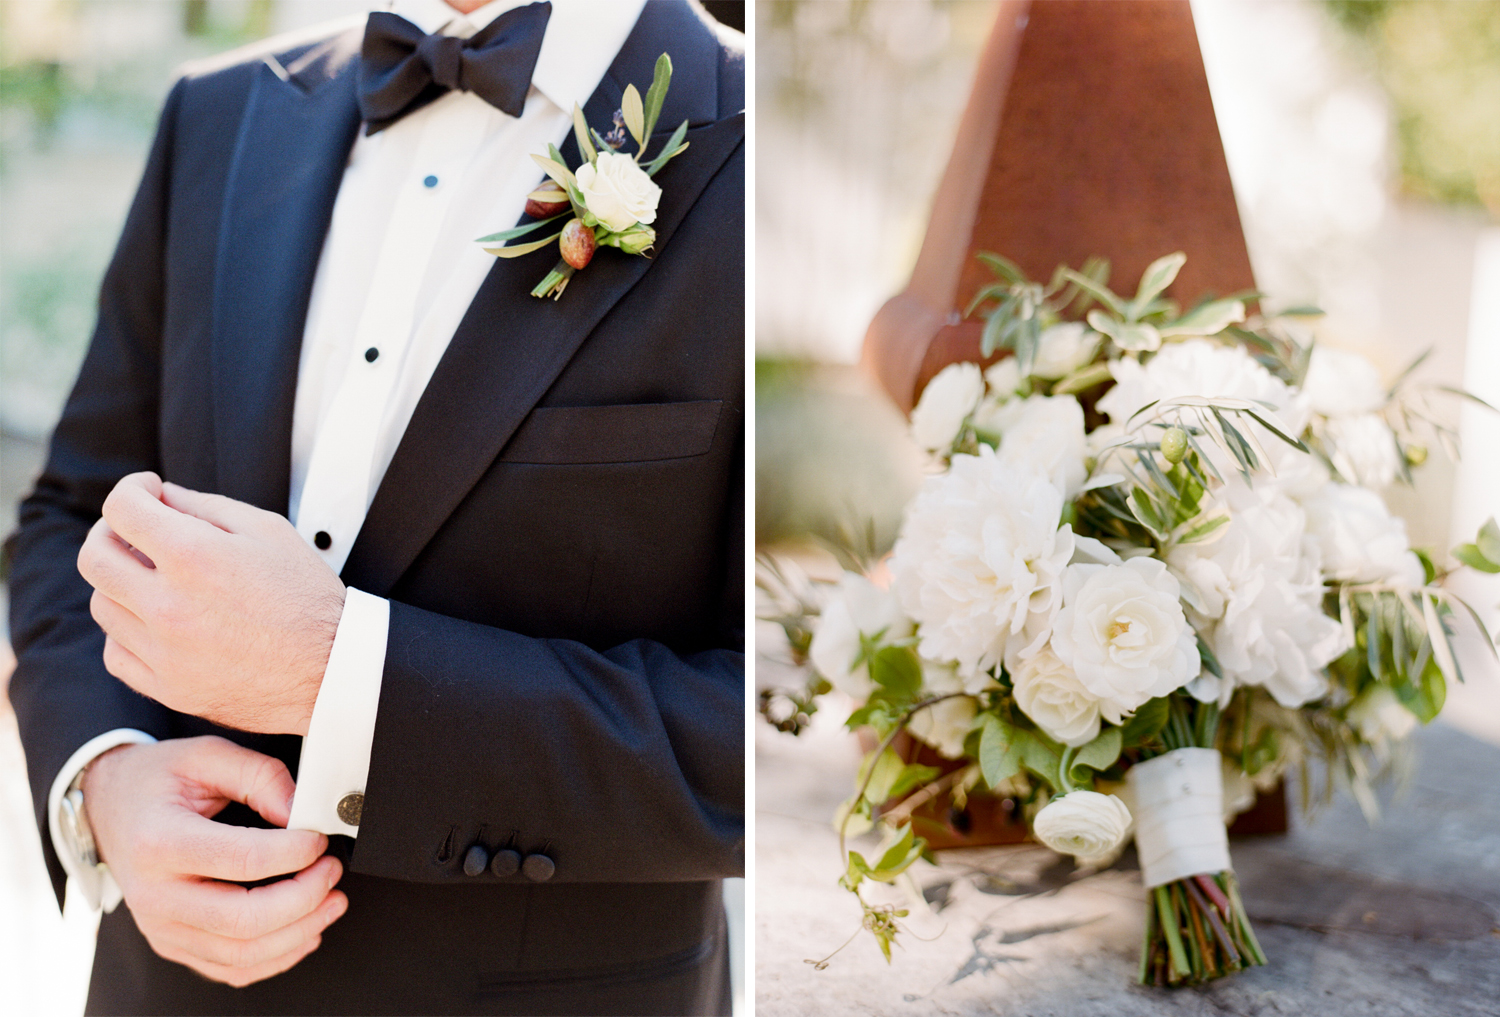 The bride's white rose and olive bouquet; Sylvie Gil Photography